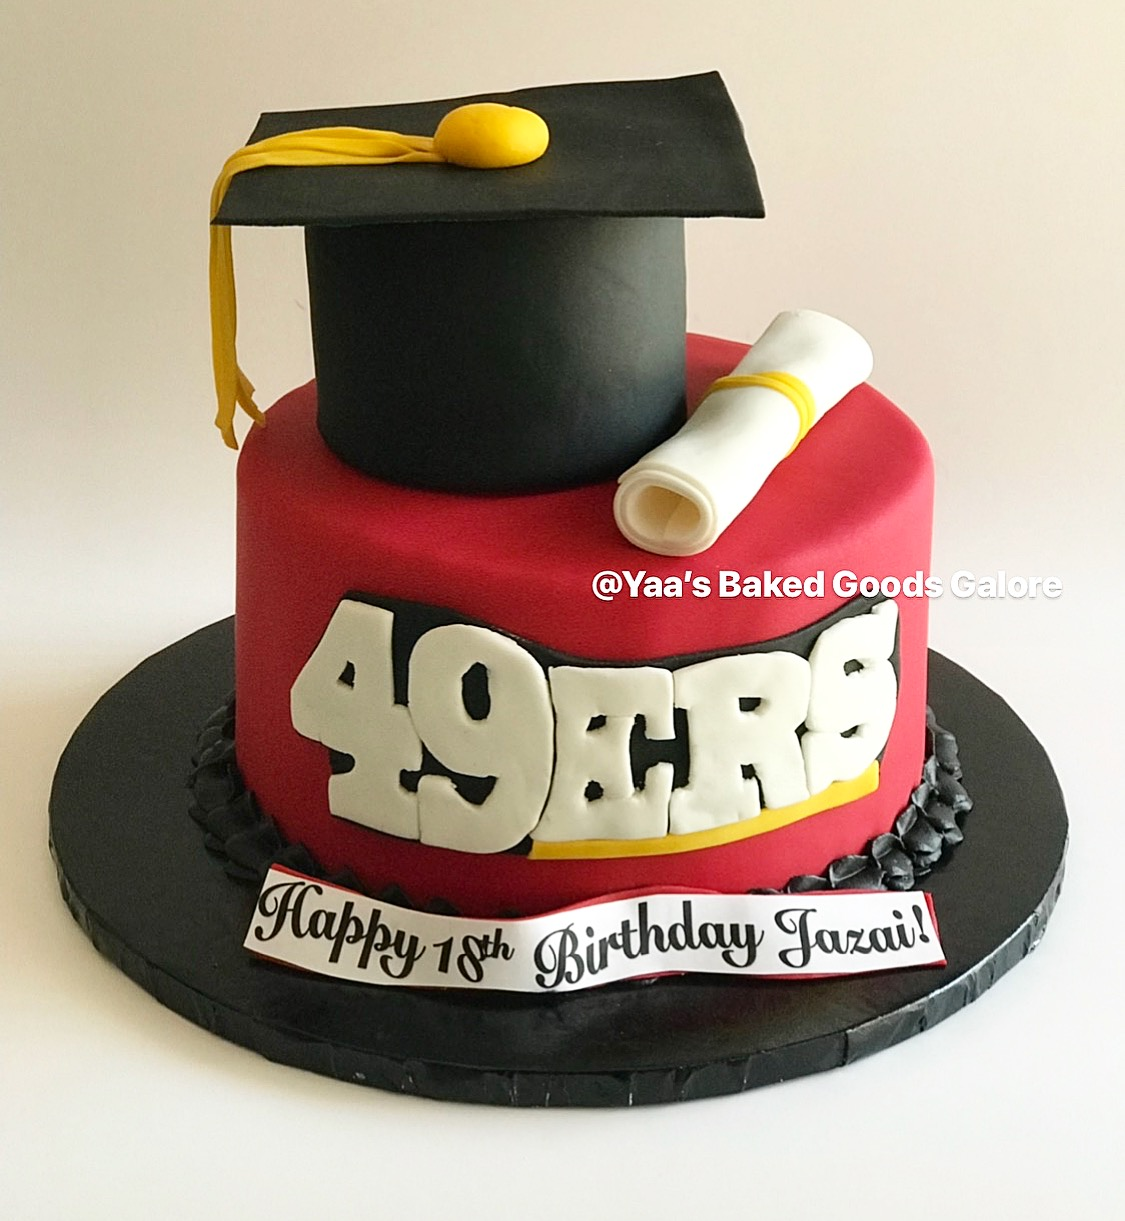 Miraculous 8 Graduation Birthday 49Ers Themed Cake Yaas Baked Goods Galore Funny Birthday Cards Online Overcheapnameinfo